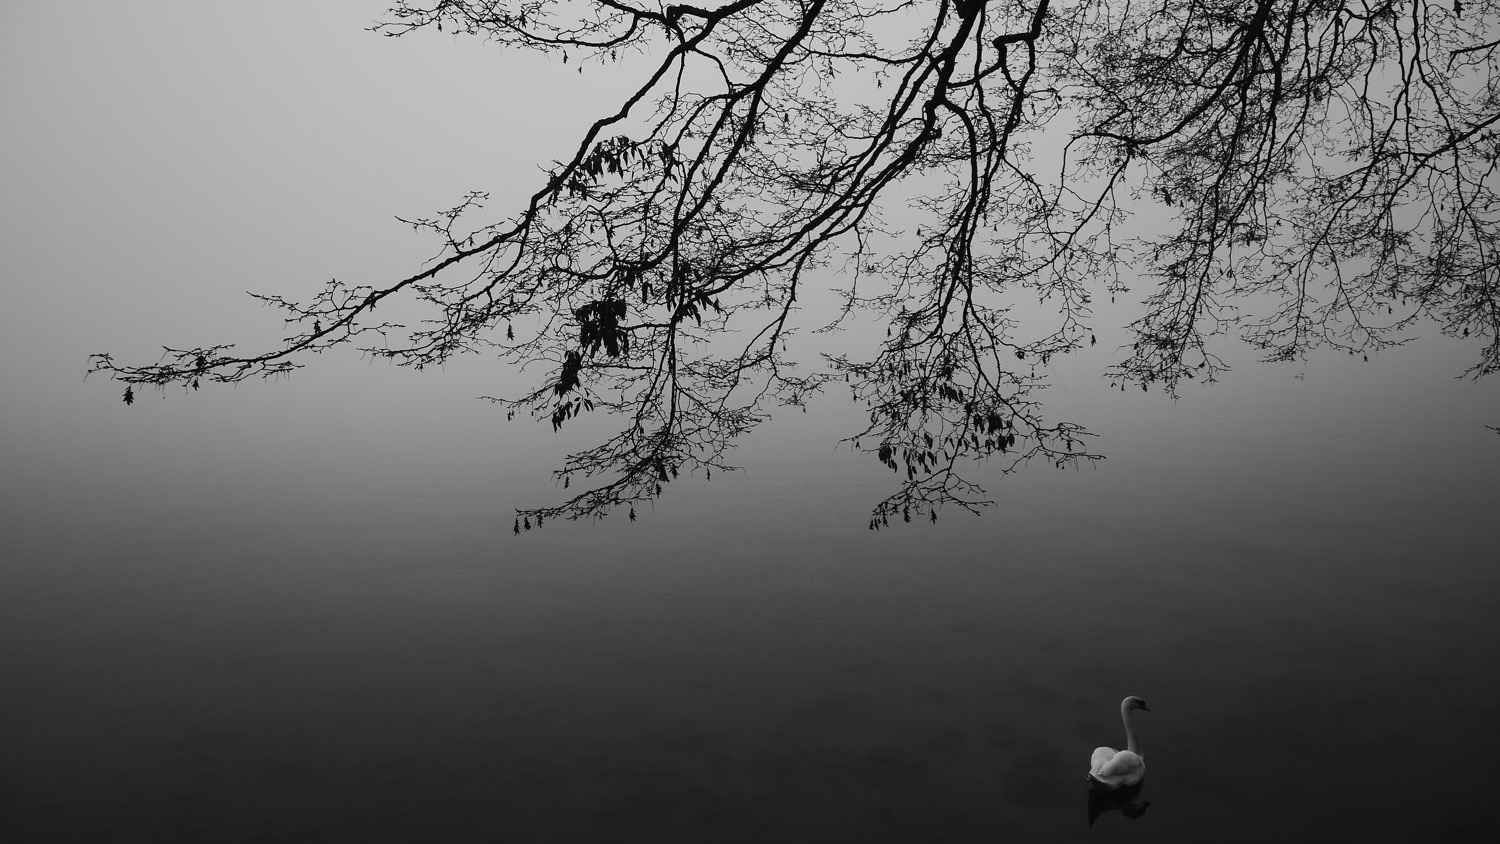 Fragments-3: Cygne so... by Mme Nathalie BERTHOD - Masterpiece Online